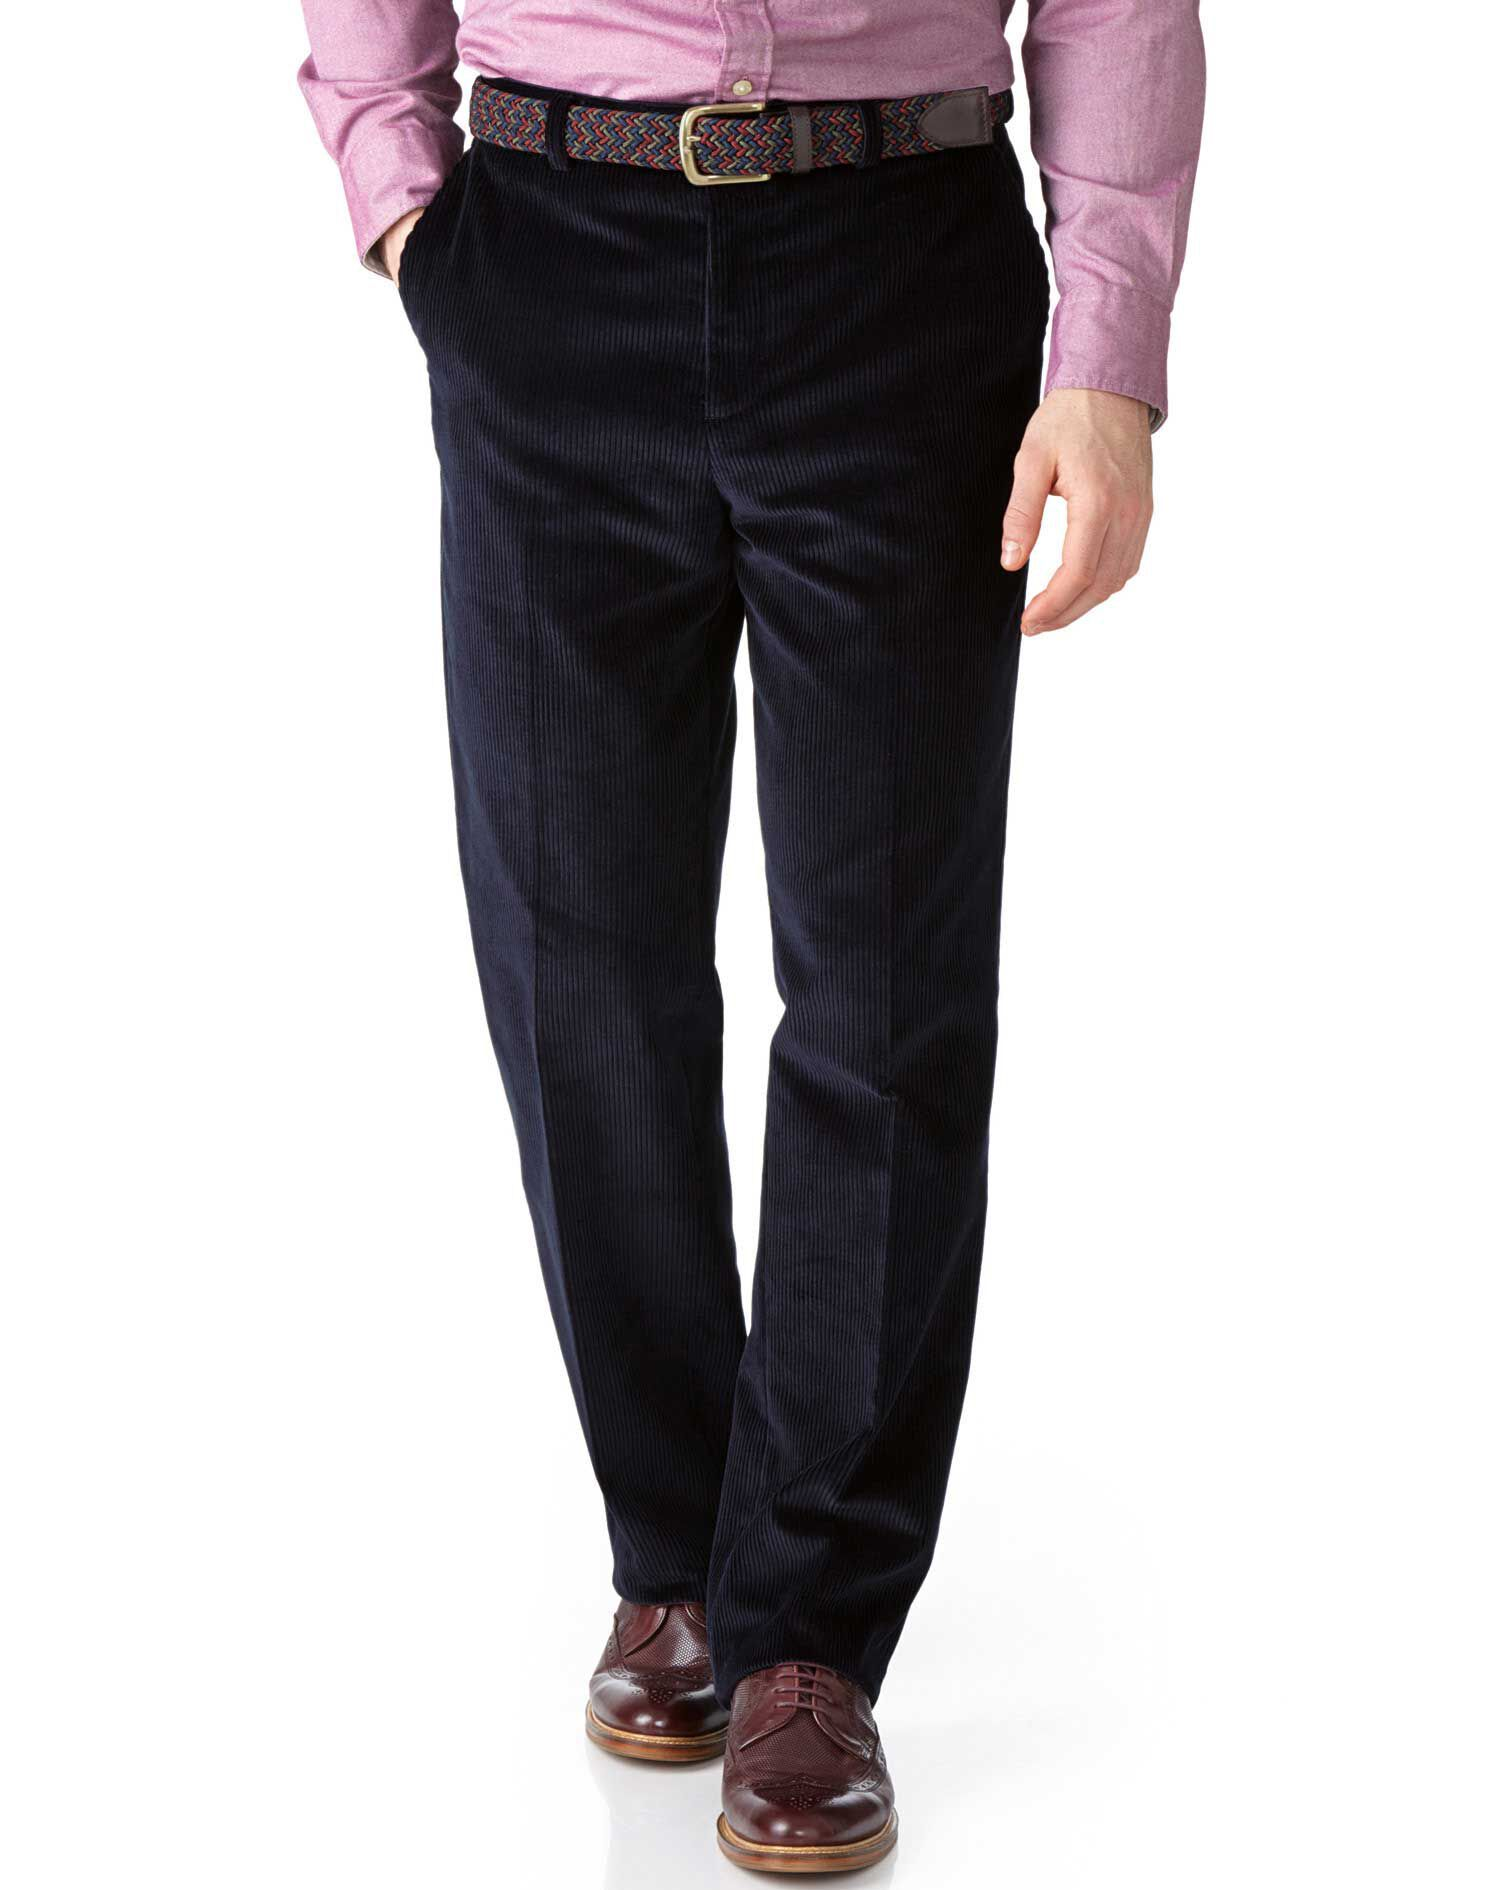 Navy Classic Fit Jumbo Cord Trousers Size W42 L32 by Charles Tyrwhitt